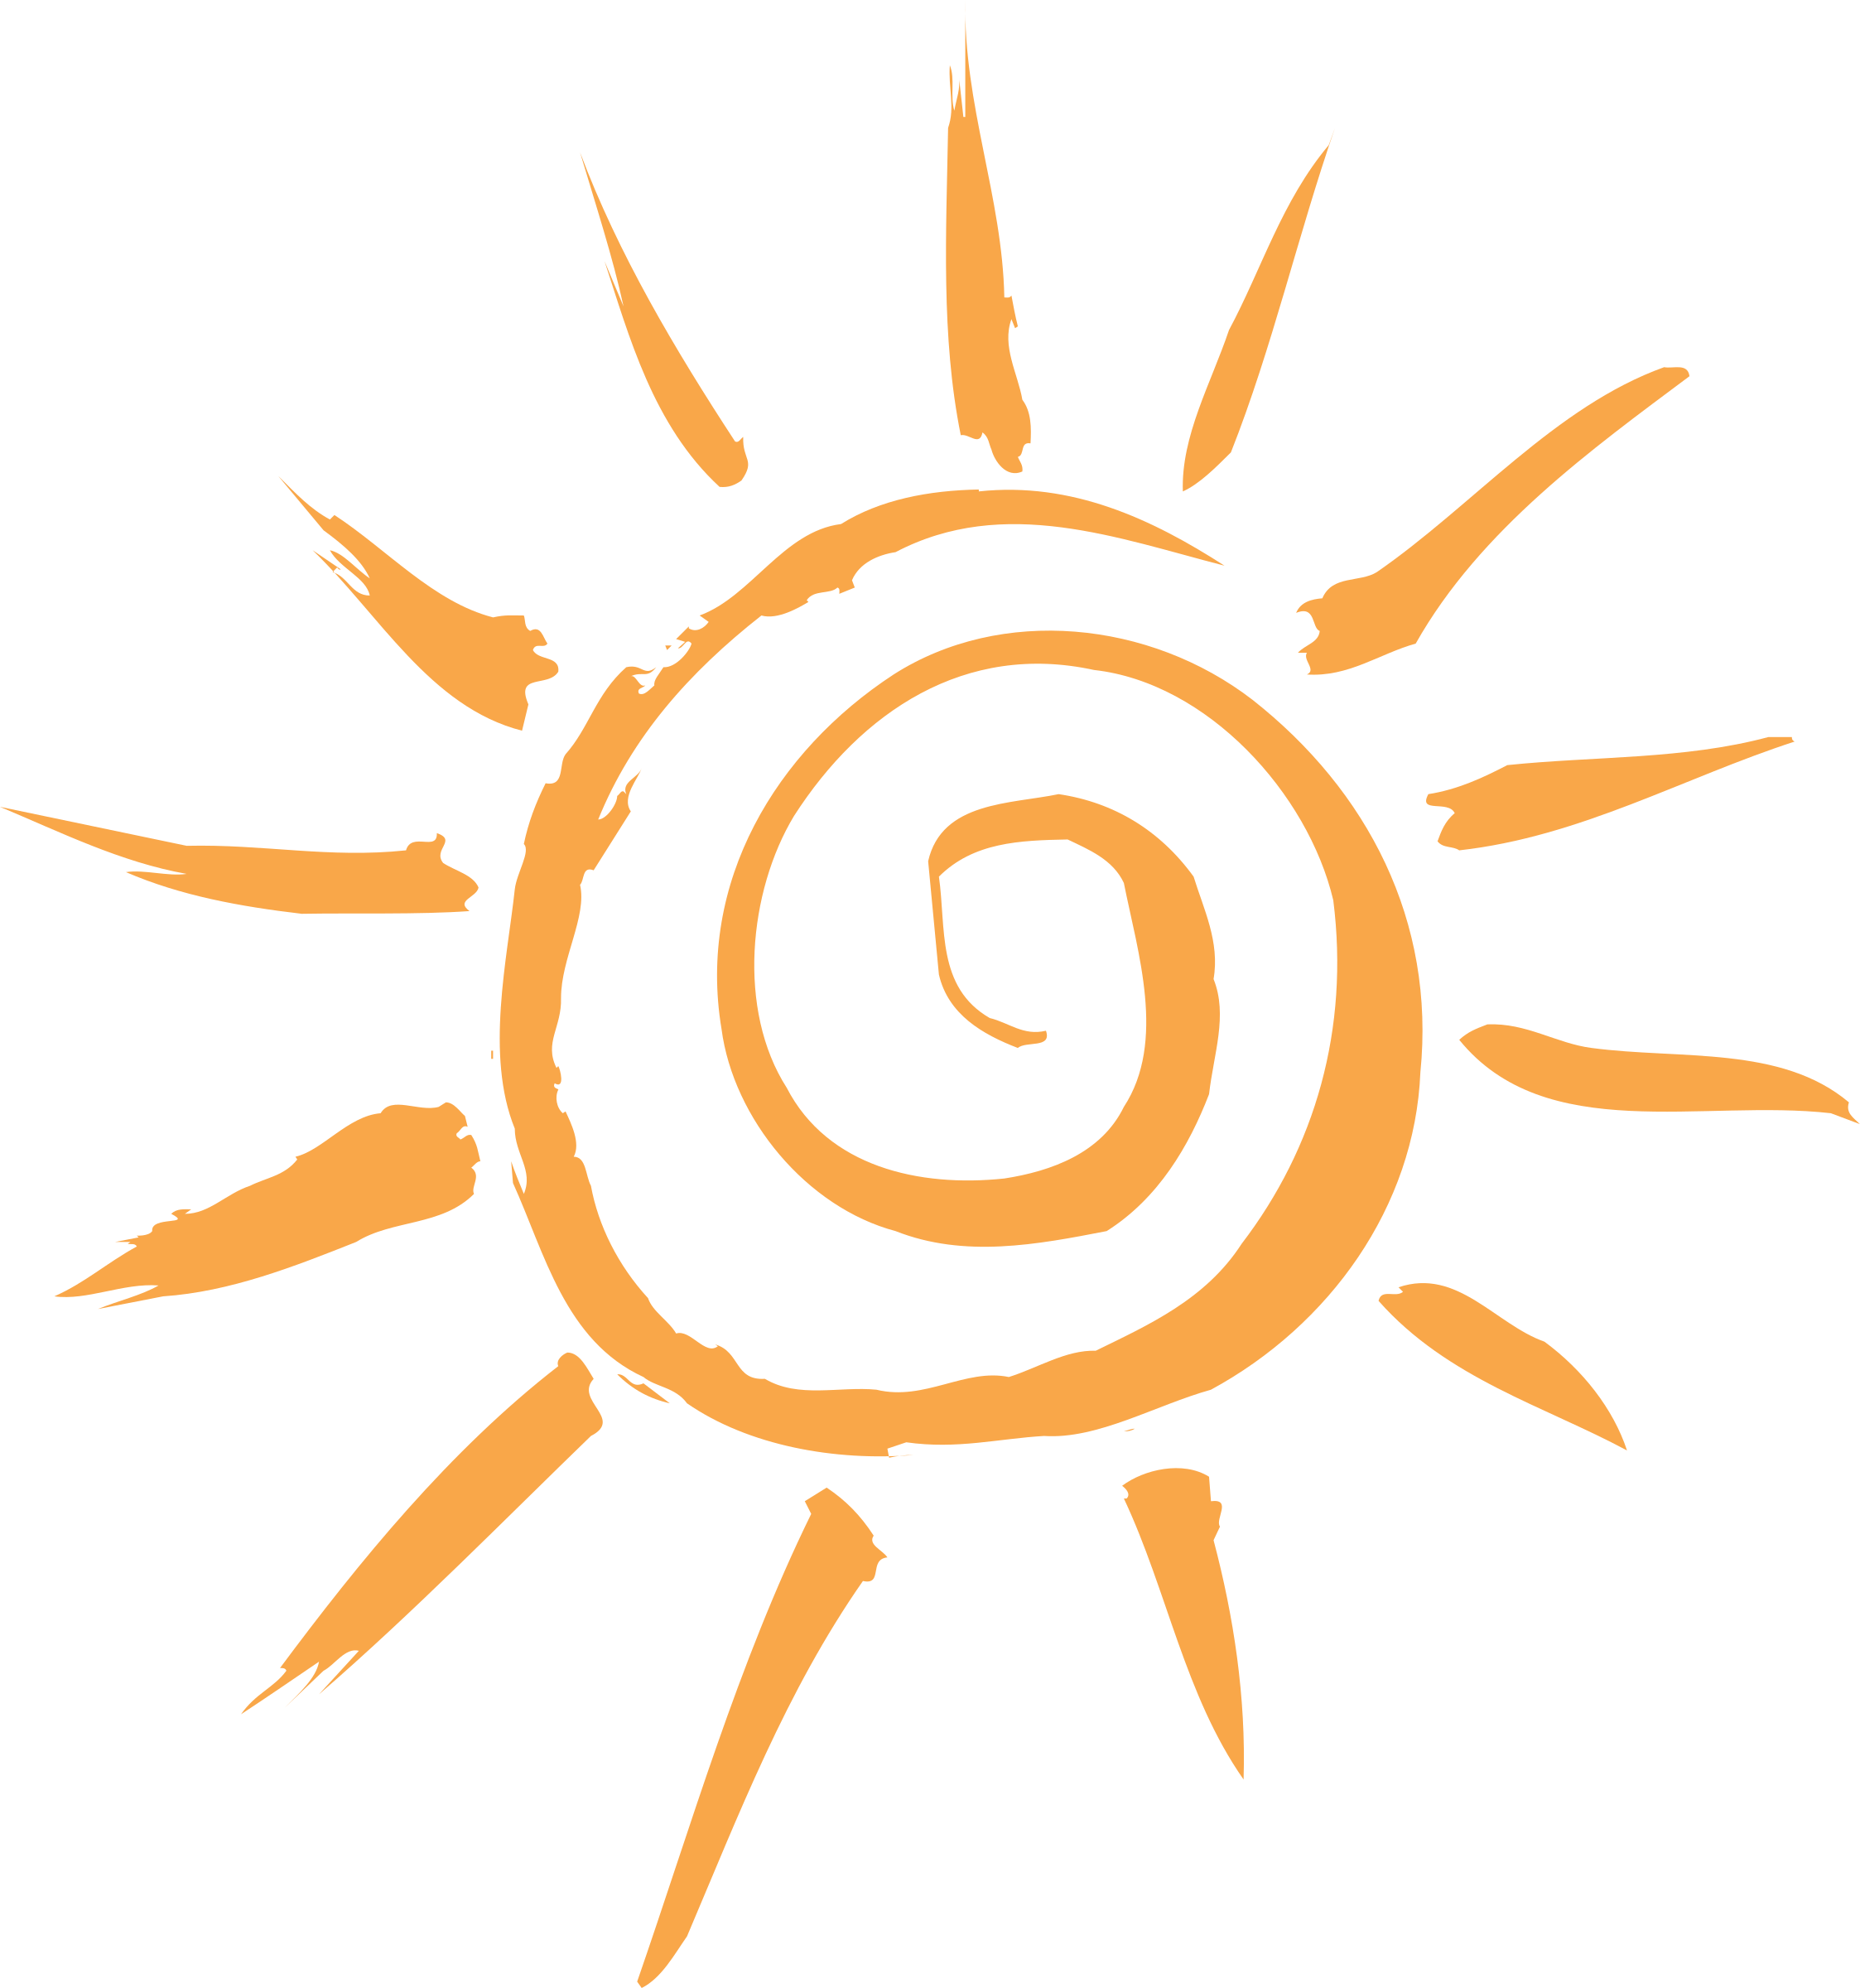 Sun doodle png. Clipart drawing at getdrawings